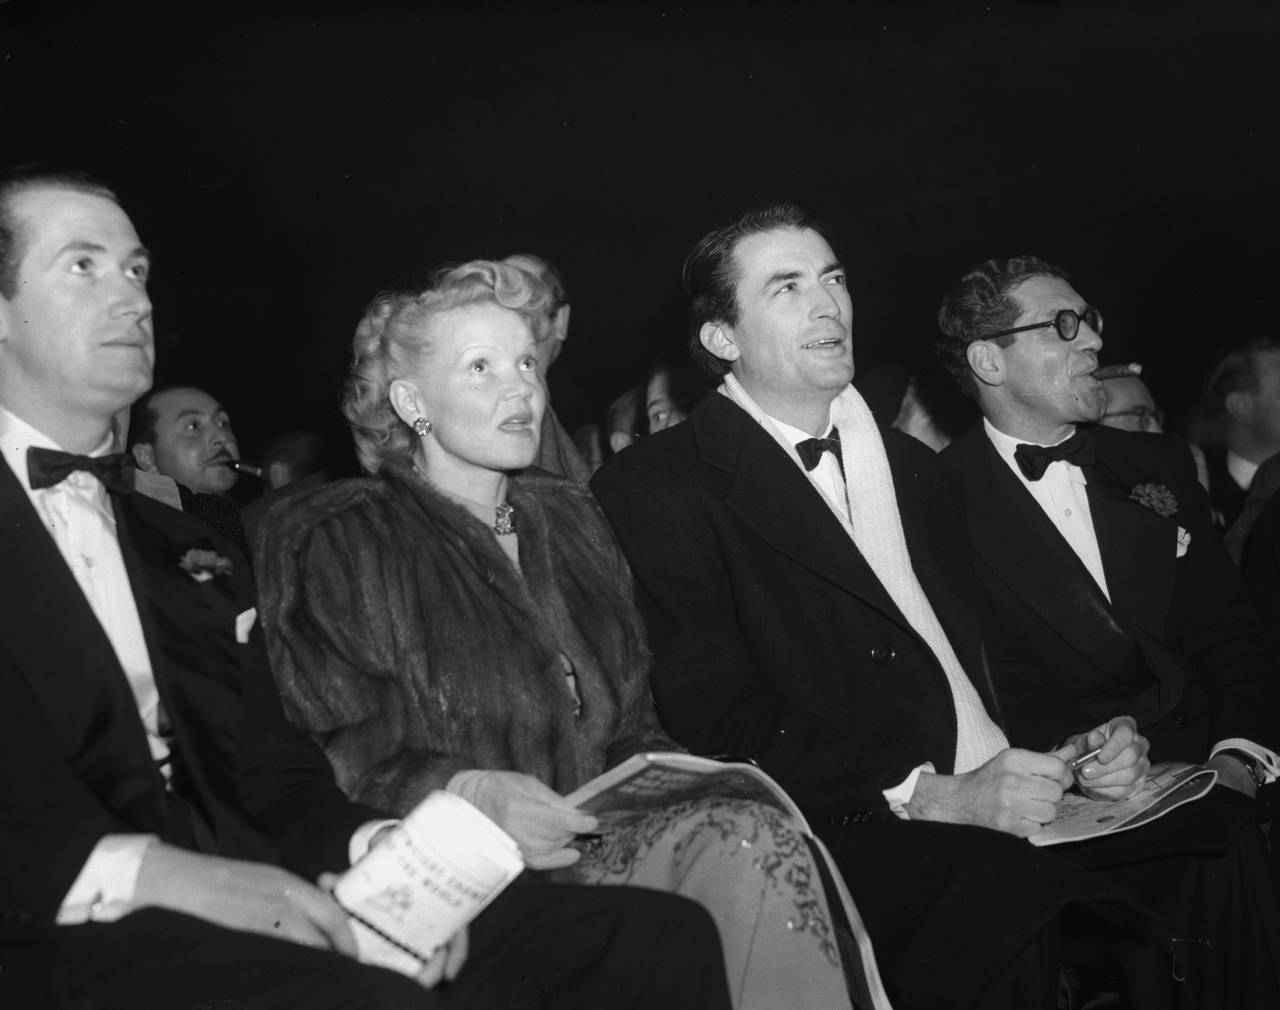 25th January 1950: American actor Gregory Peck (1916 - 2003) and his first wife Greta attend a boxing match between Freddie Mills and Joey Maxim at Earl's Court, London. (Photo by Ron Gerelli/Express/Getty Images)